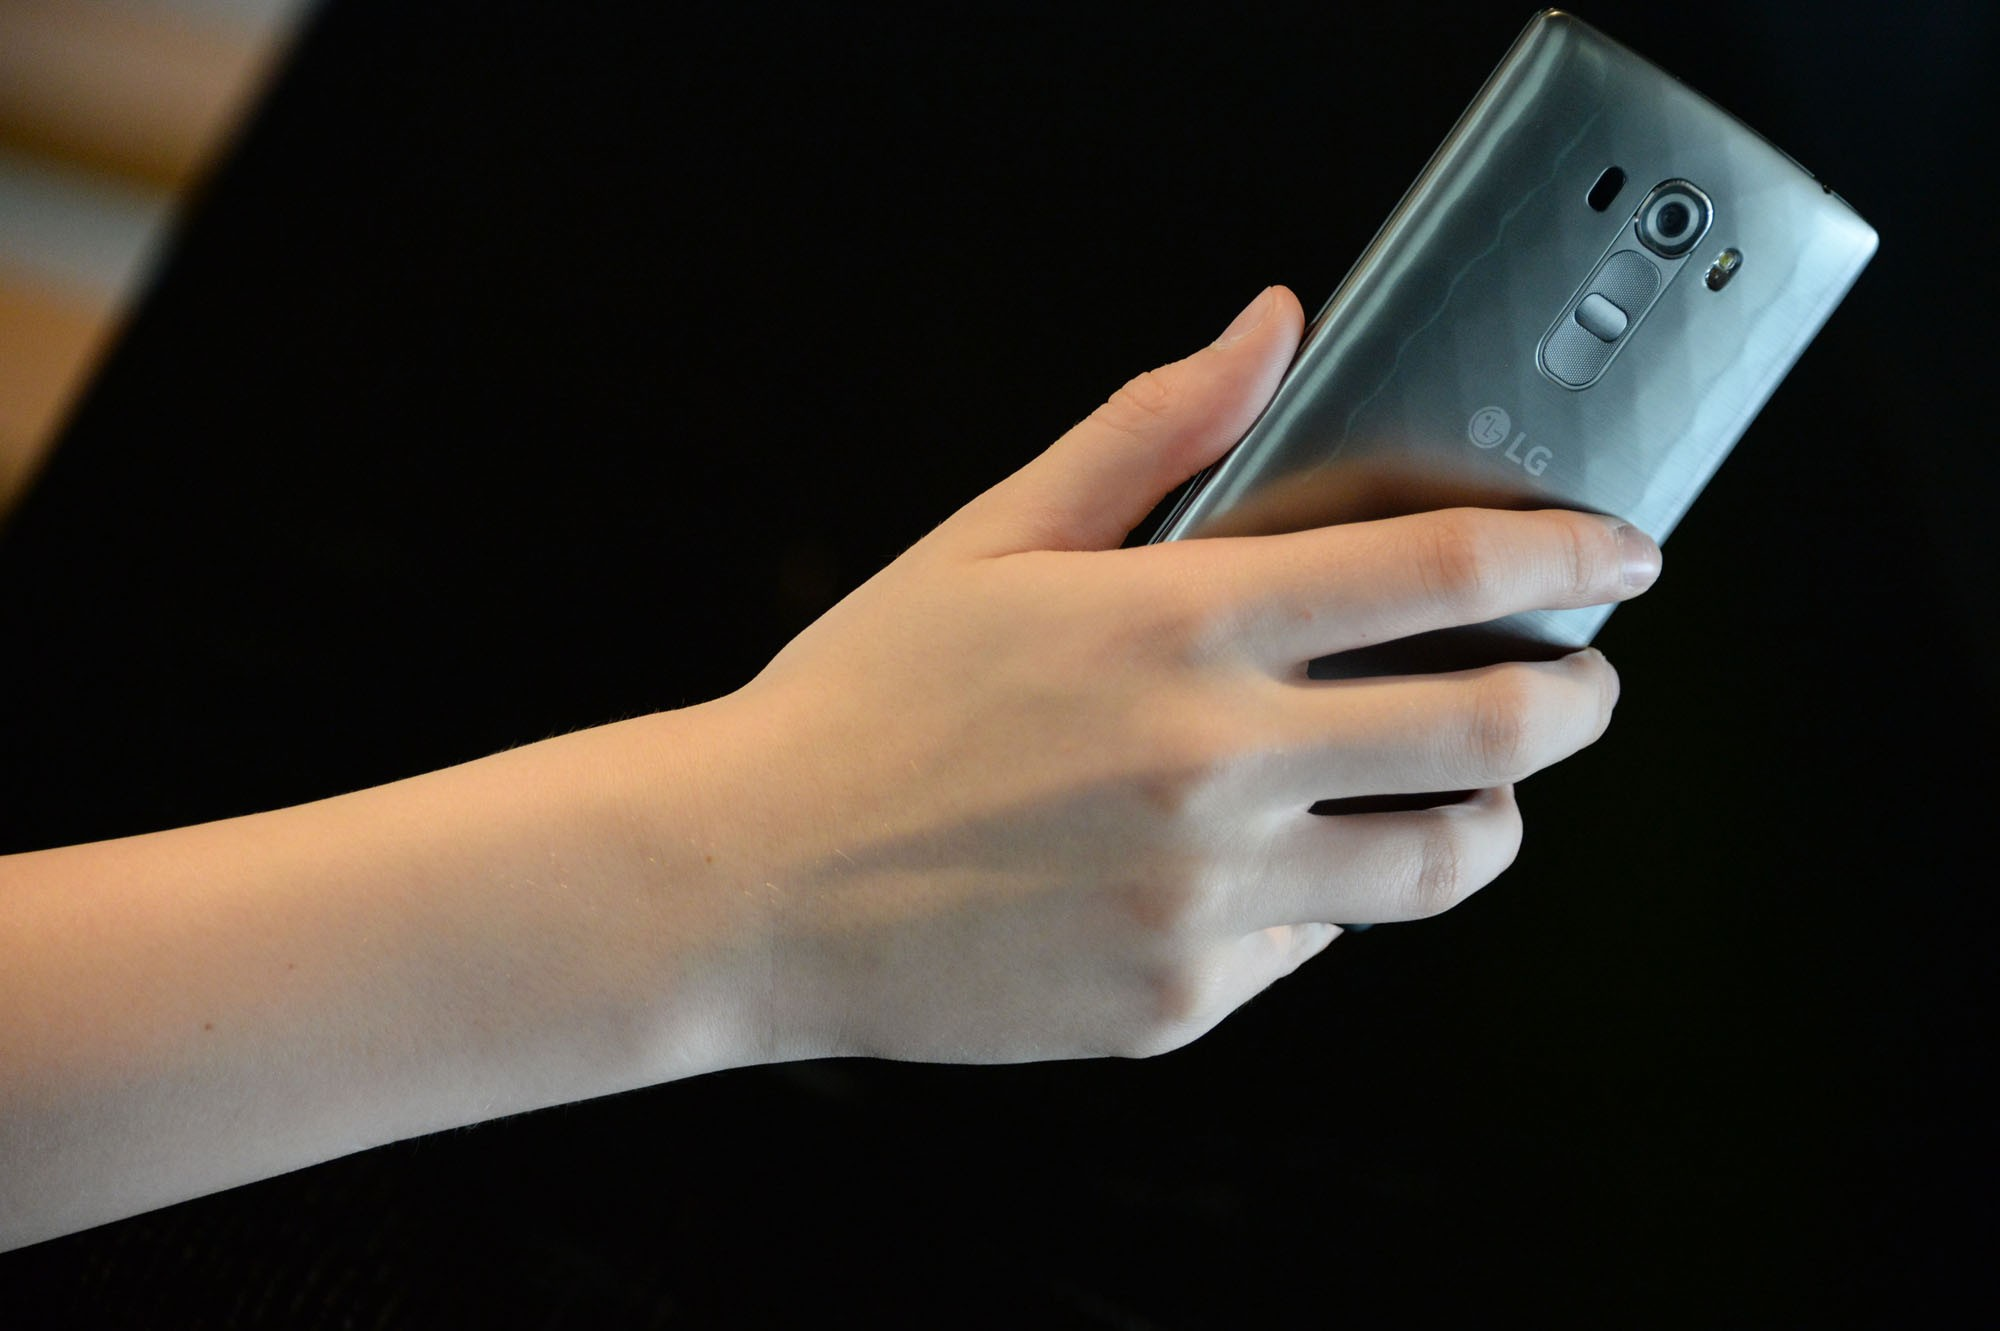 A close-up of a woman holding the LG G4 Beat in Metallic Silver color, showing its rear side.